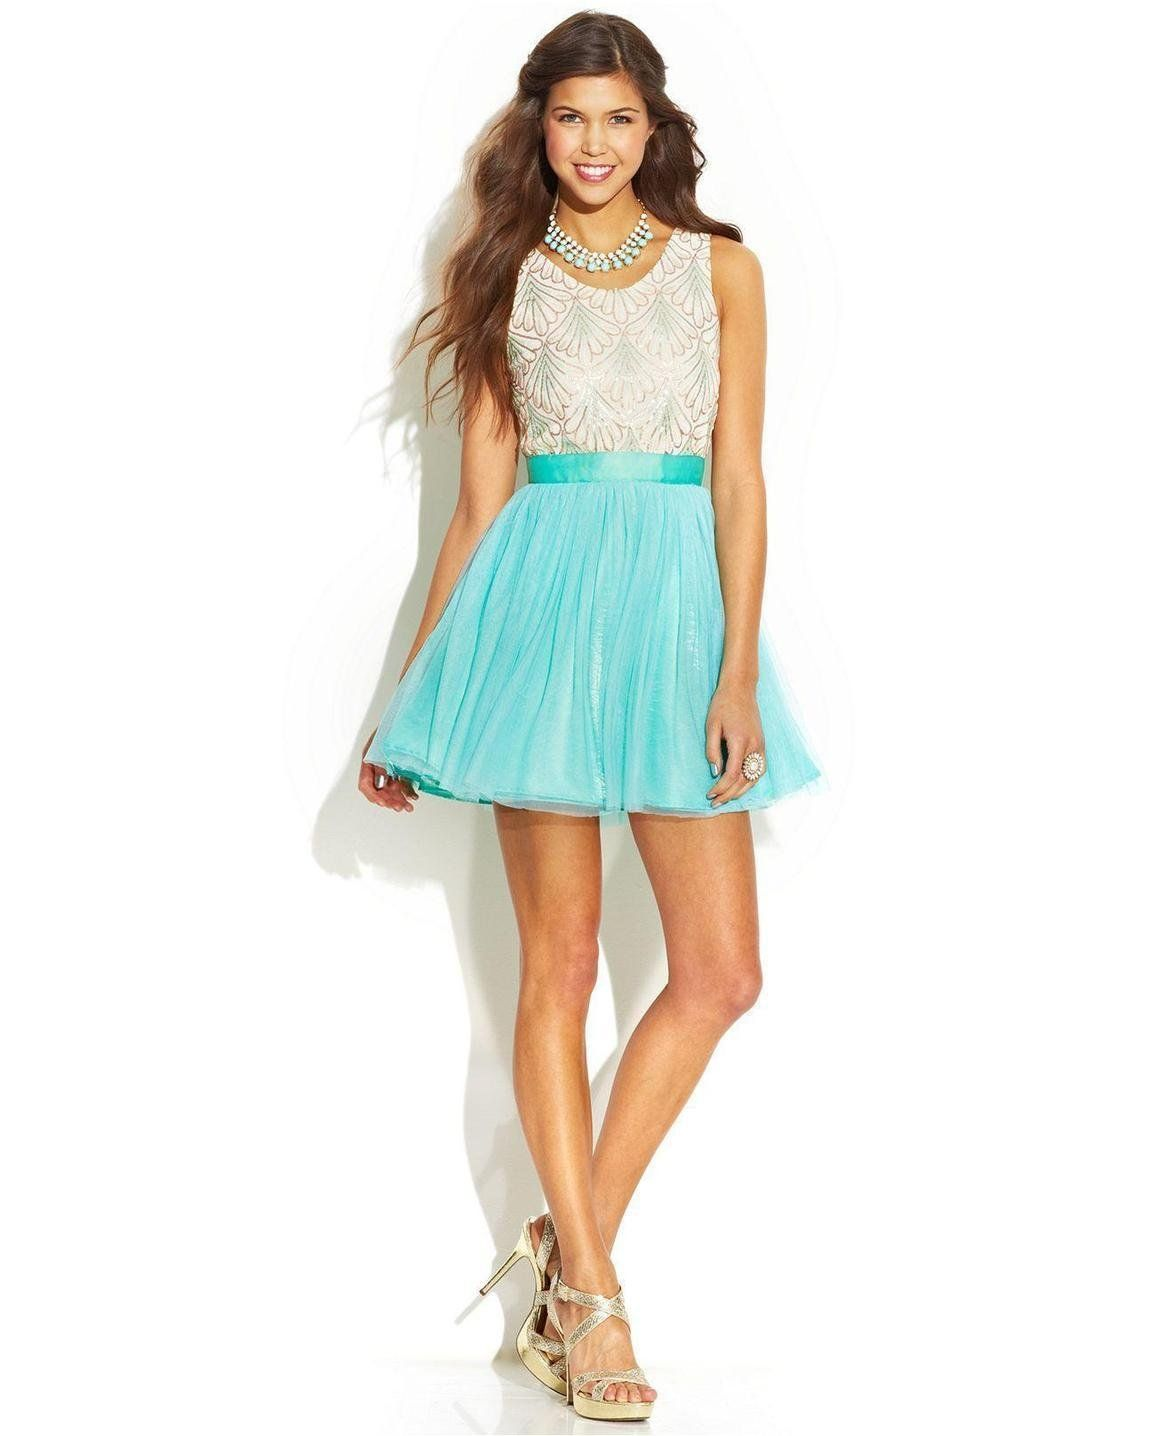 As U Wish Juniors\' Sequin Tulle Dress http://picvpic.com/women ...